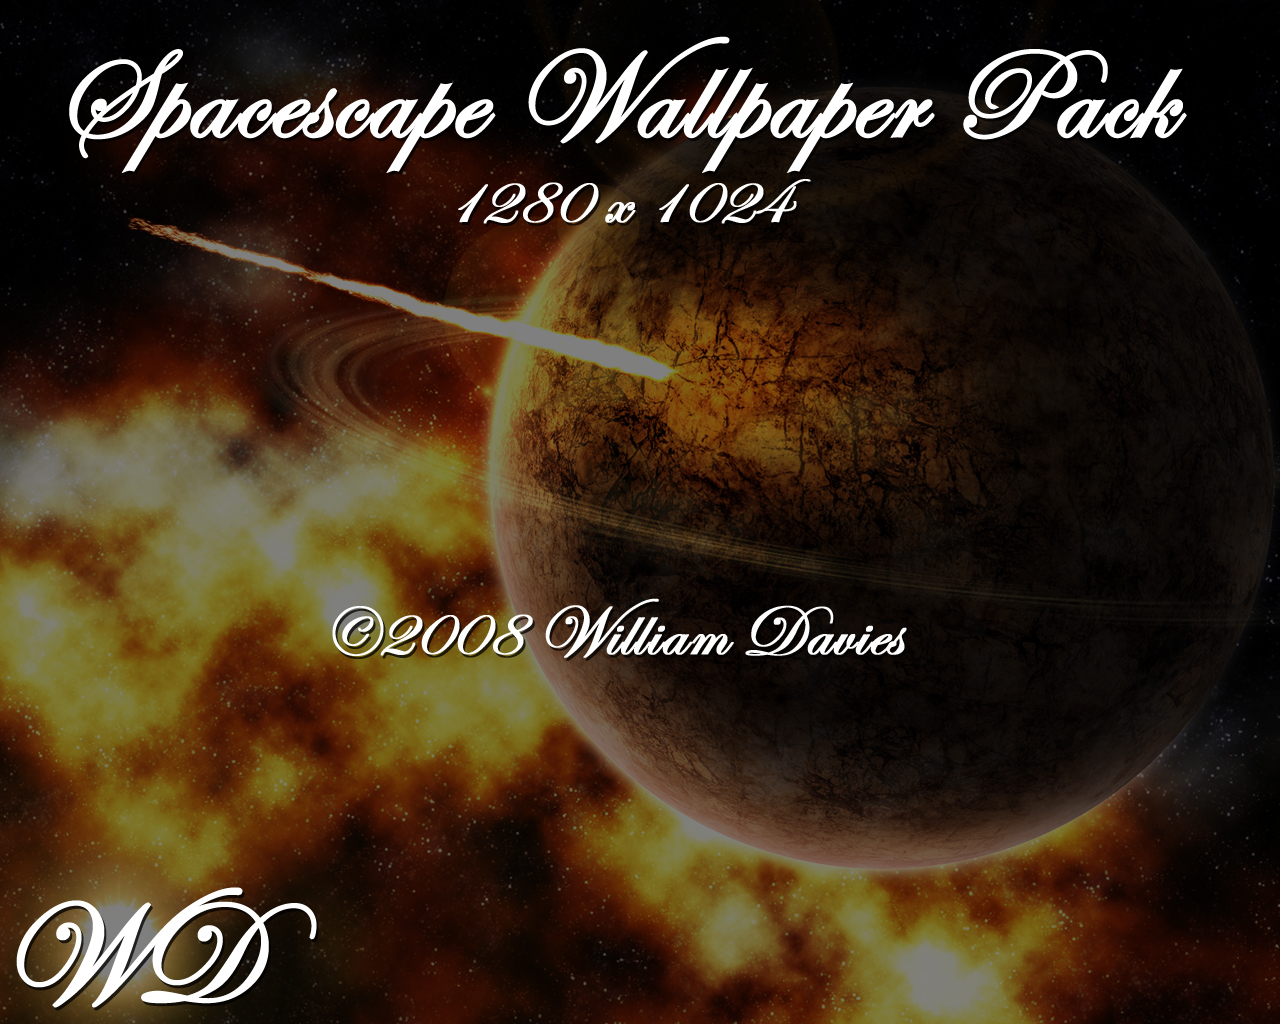 1280x1024 Space Wallpaper Pack